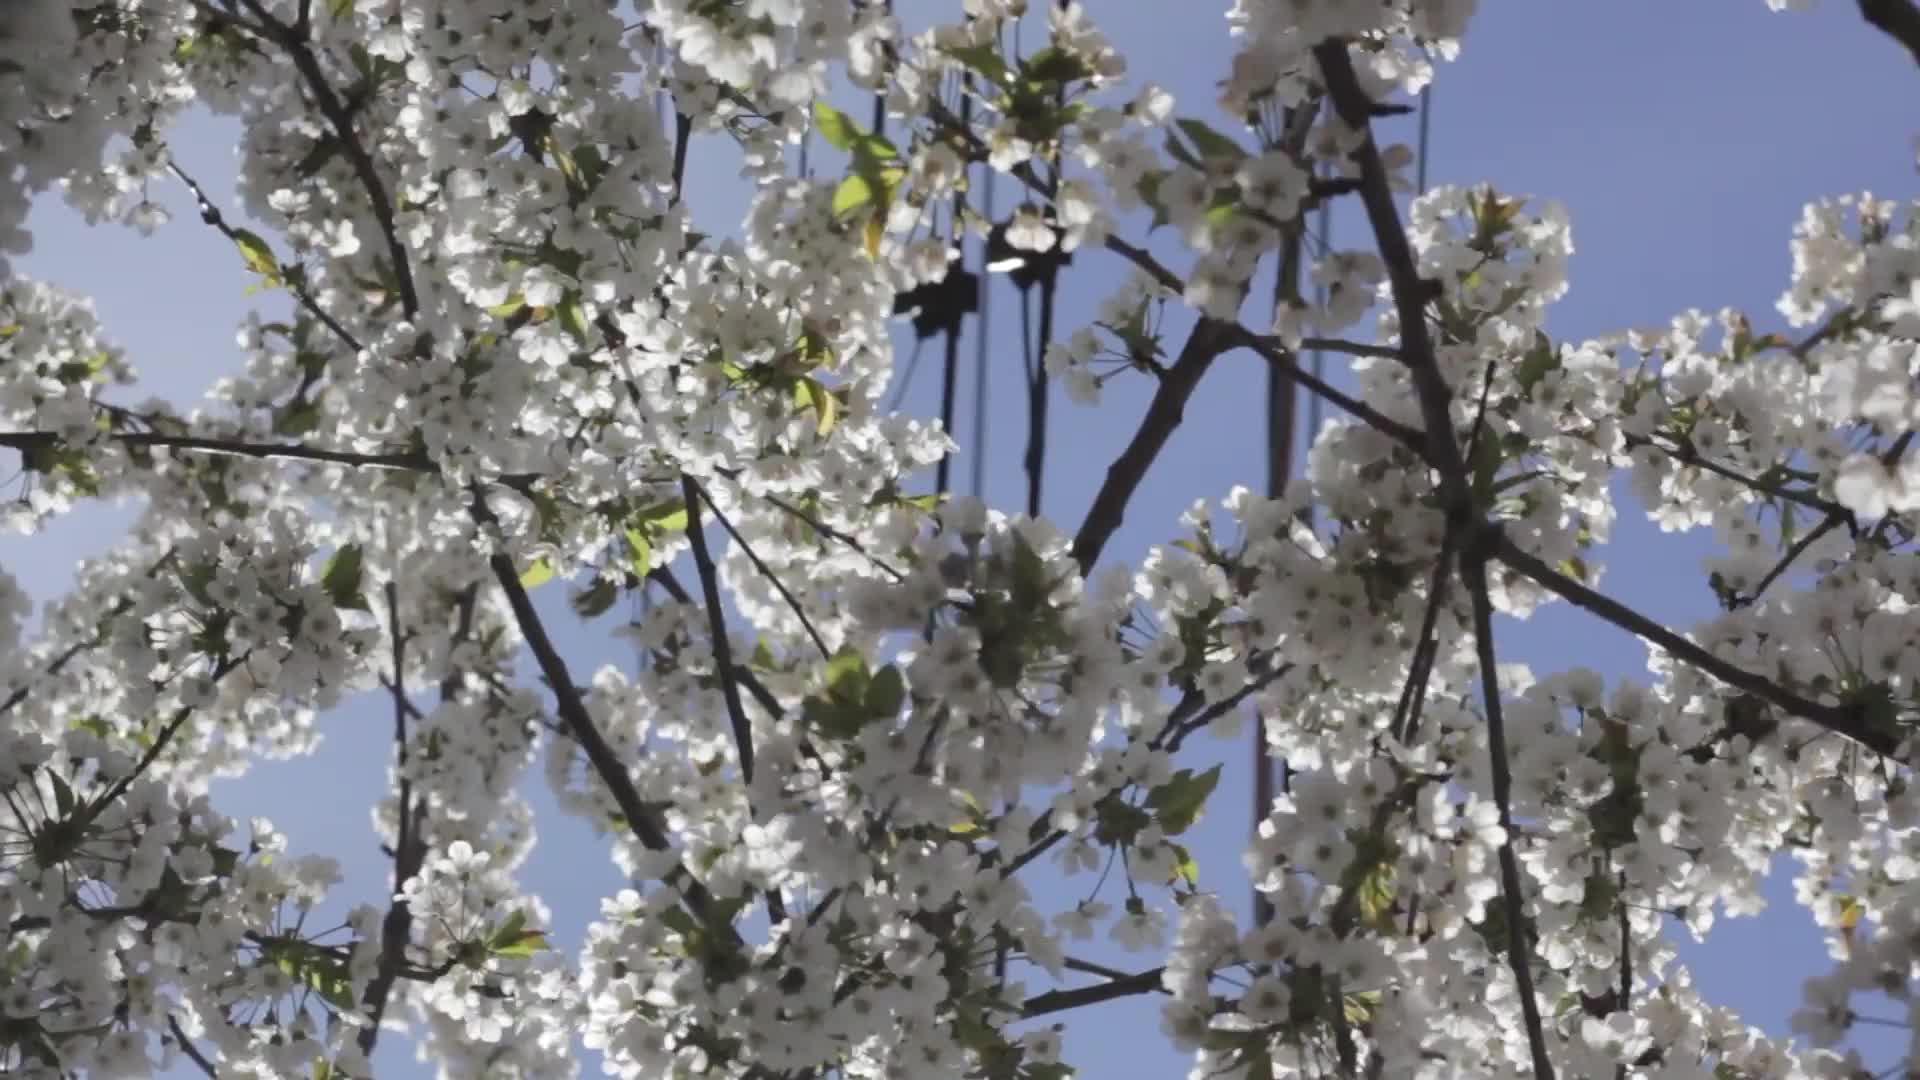 Tree blossom flowering tree twigs blossoming white